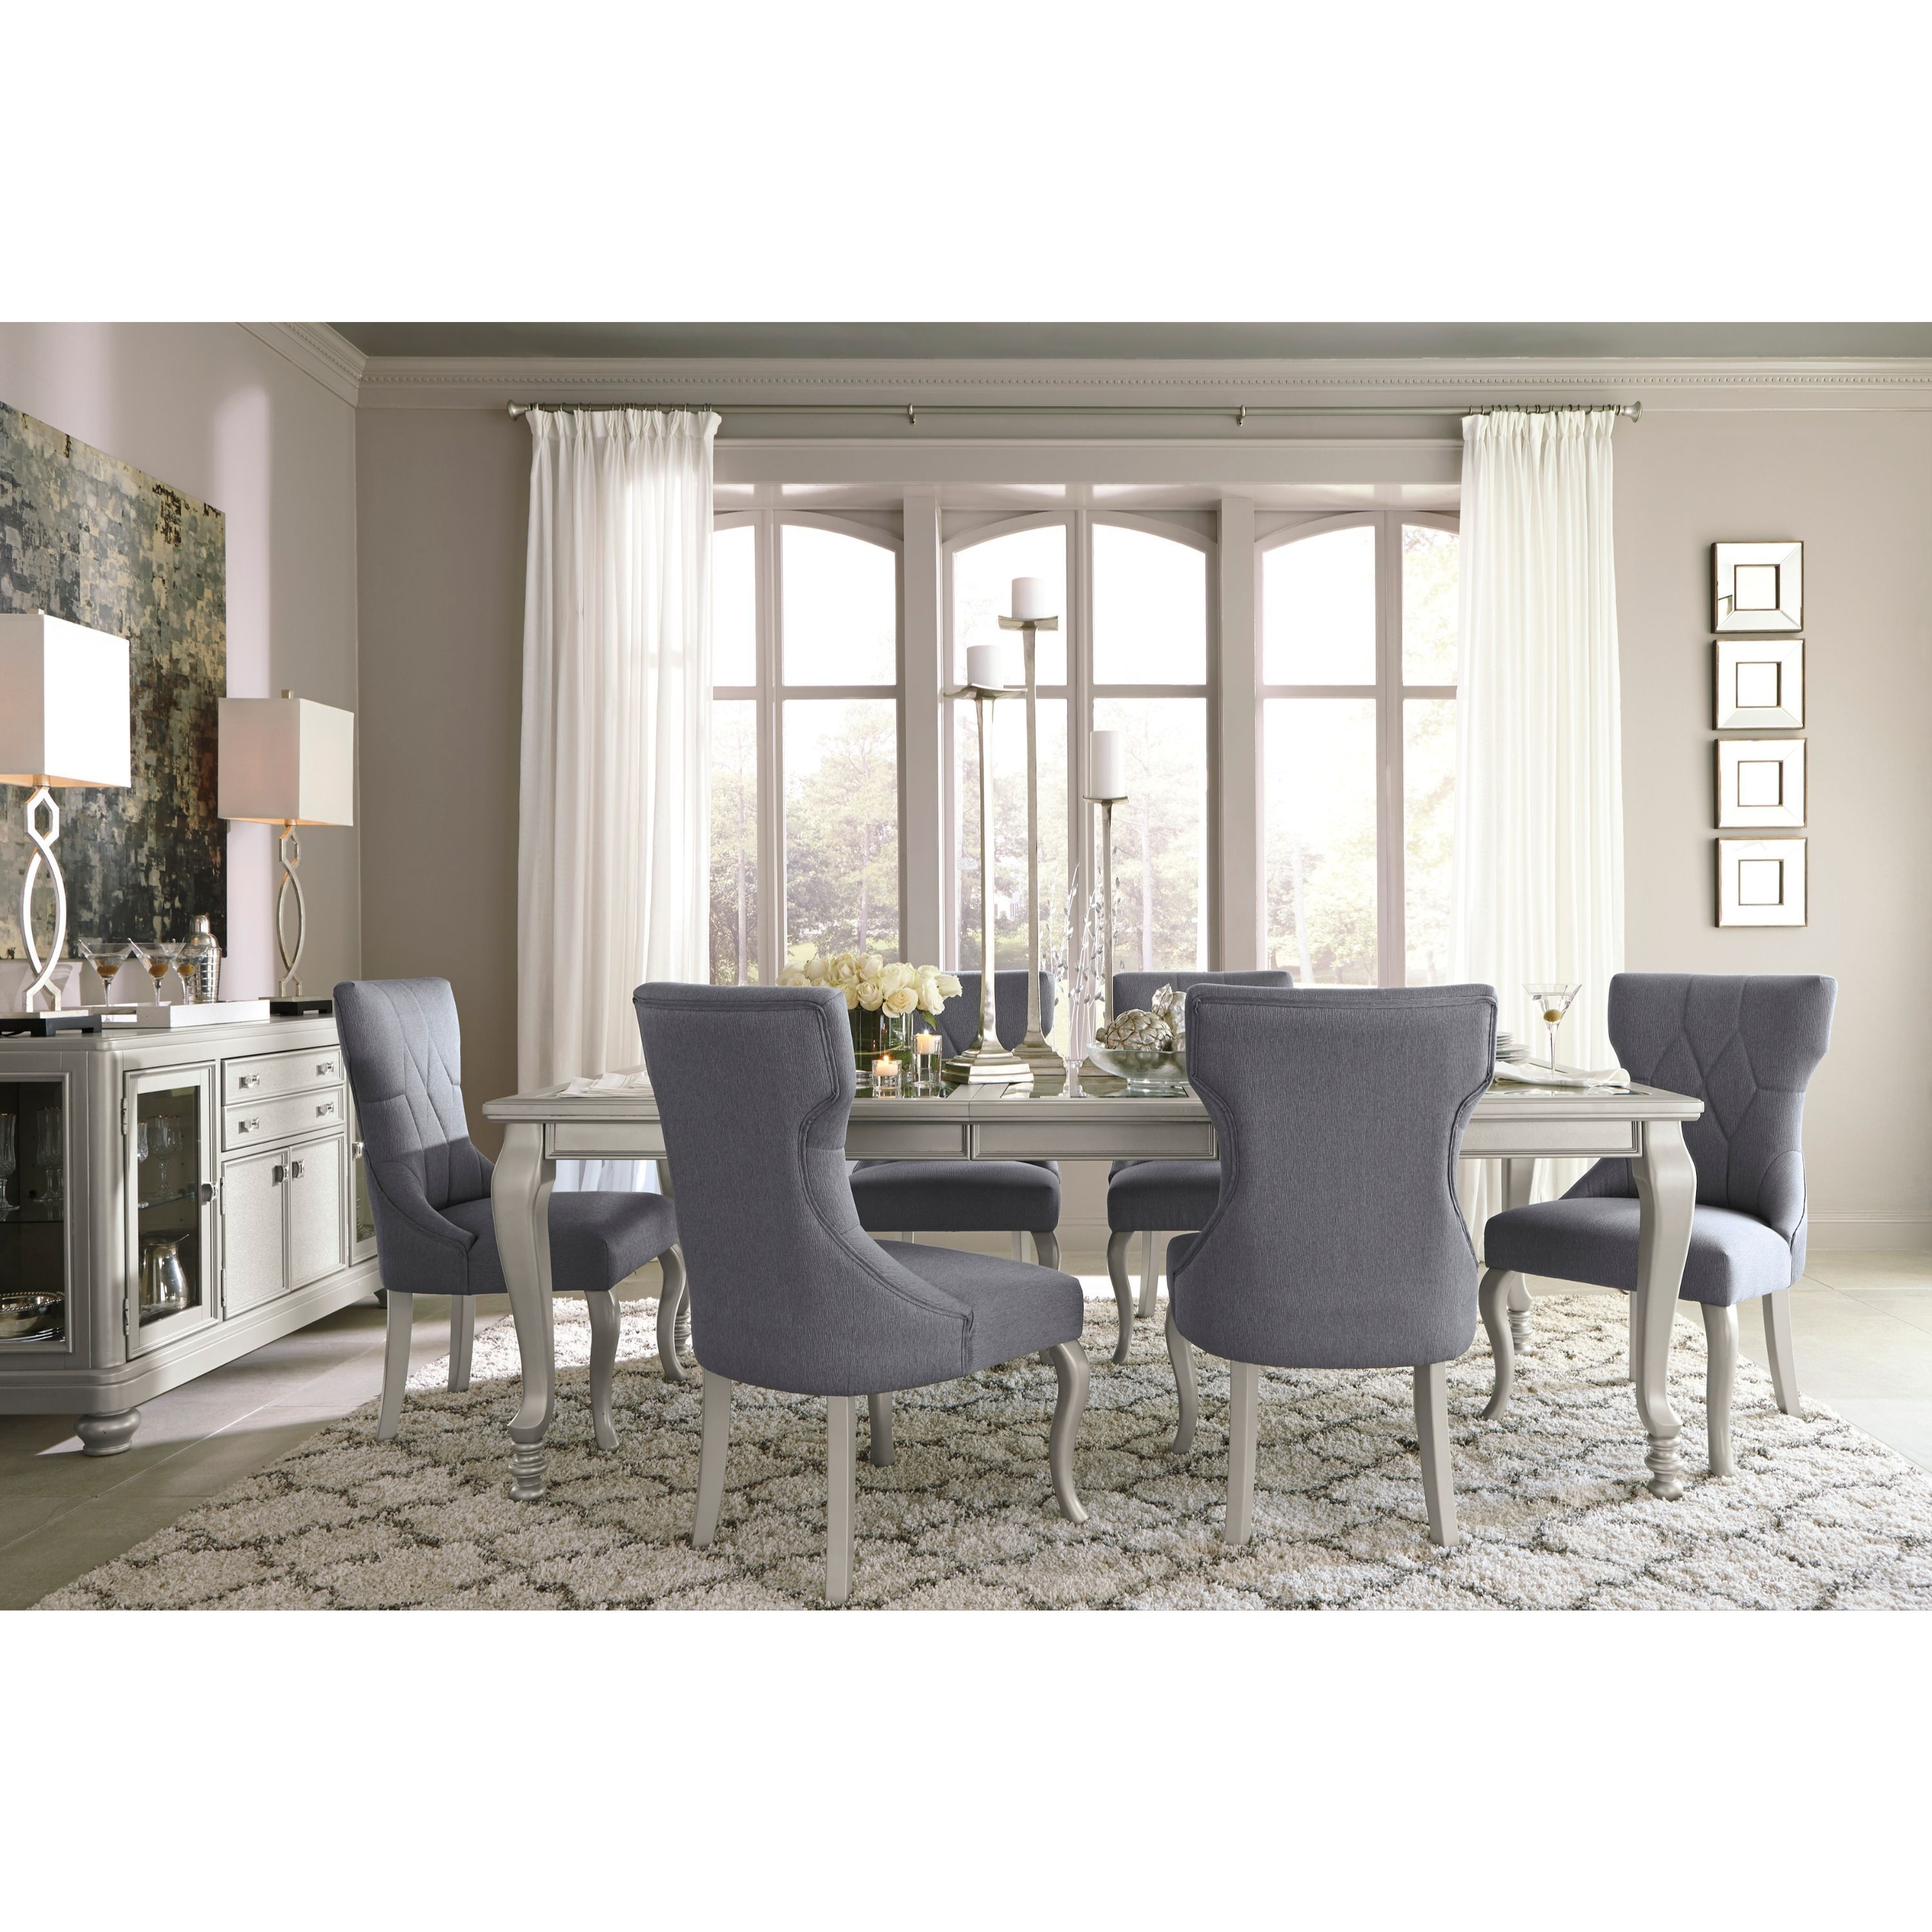 Most Recent Cora 5 Piece Dining Sets Pertaining To Shop Signature Designashley Coralayne Silver Dining Room Table (View 23 of 25)